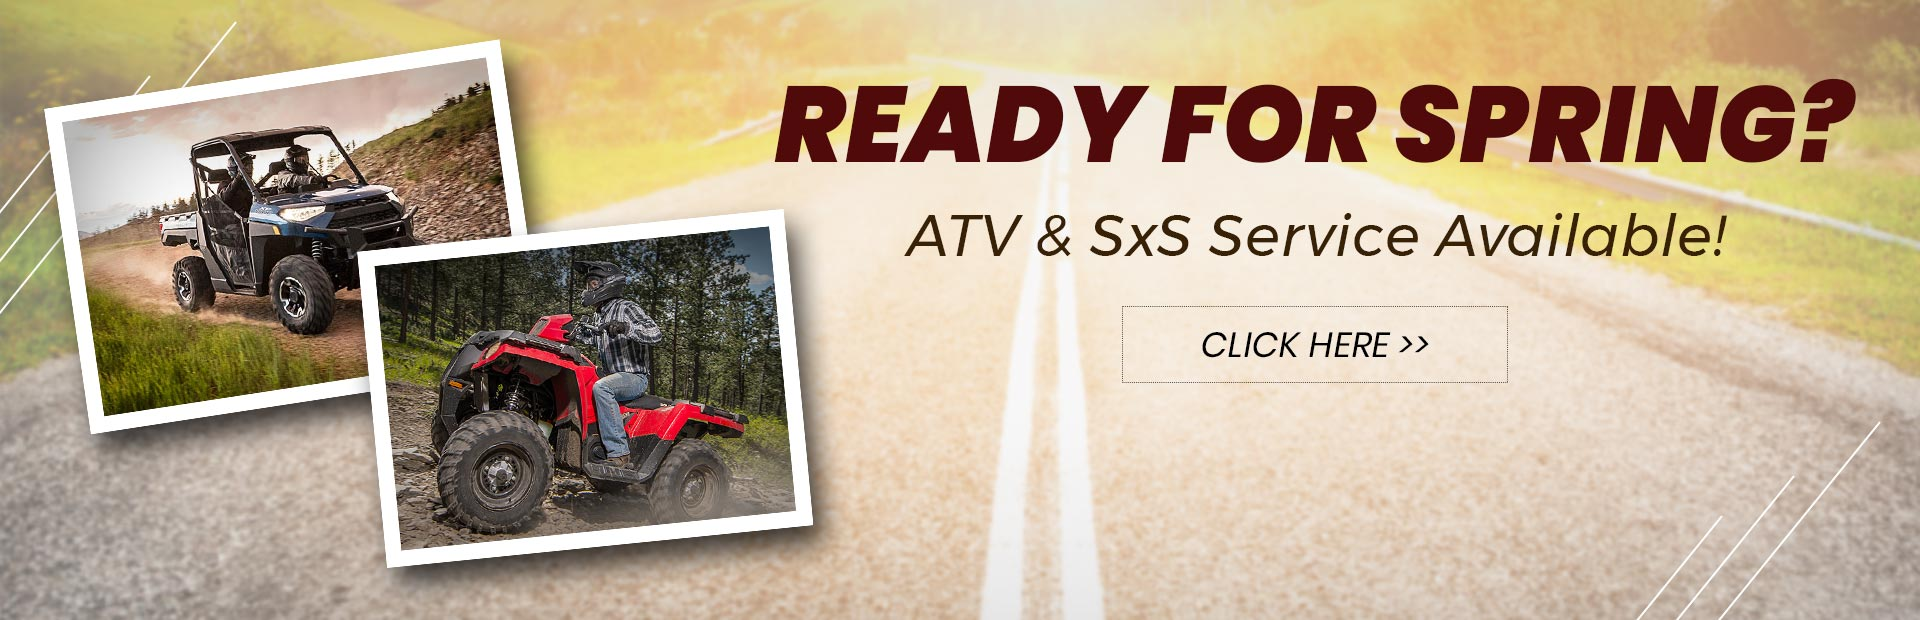 Ready for spring? ATV & SxS service available!: Click here for further details.